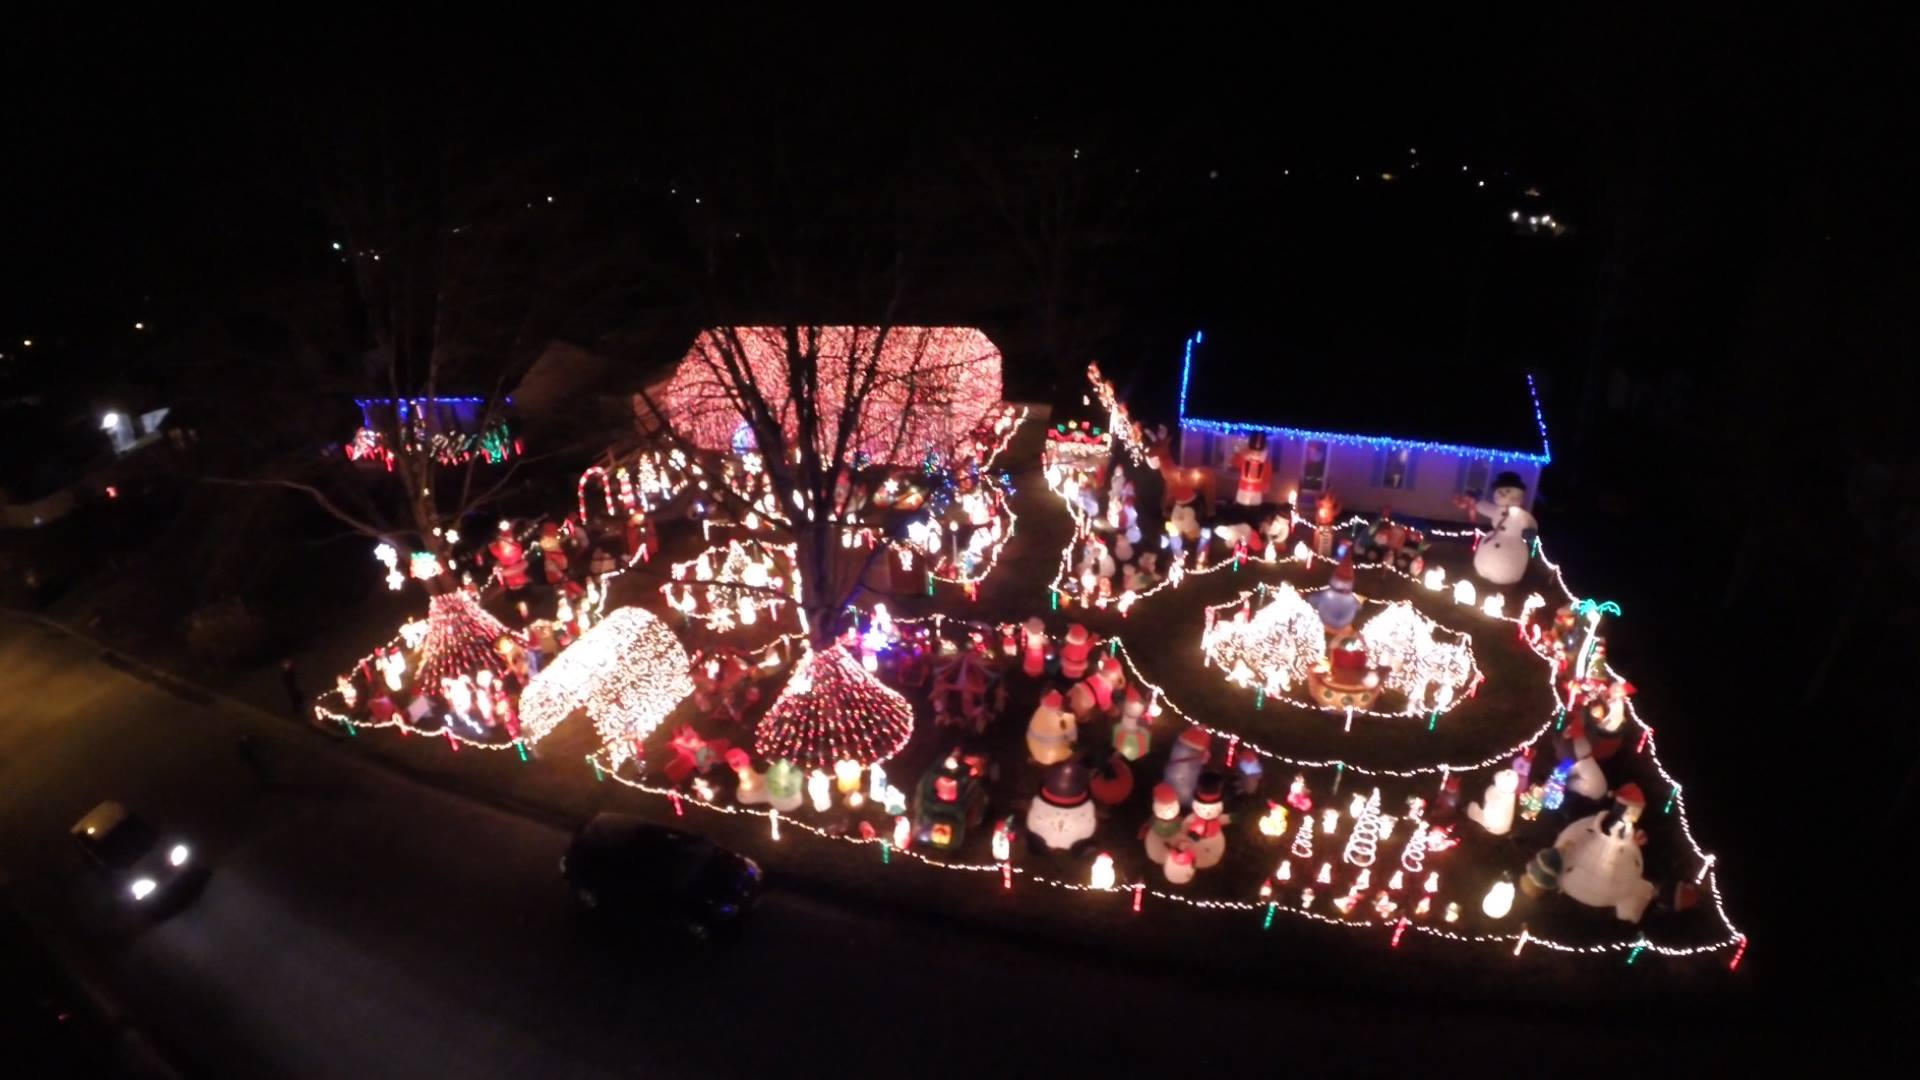 pittsvilles beloved christmas display ending 20 year run